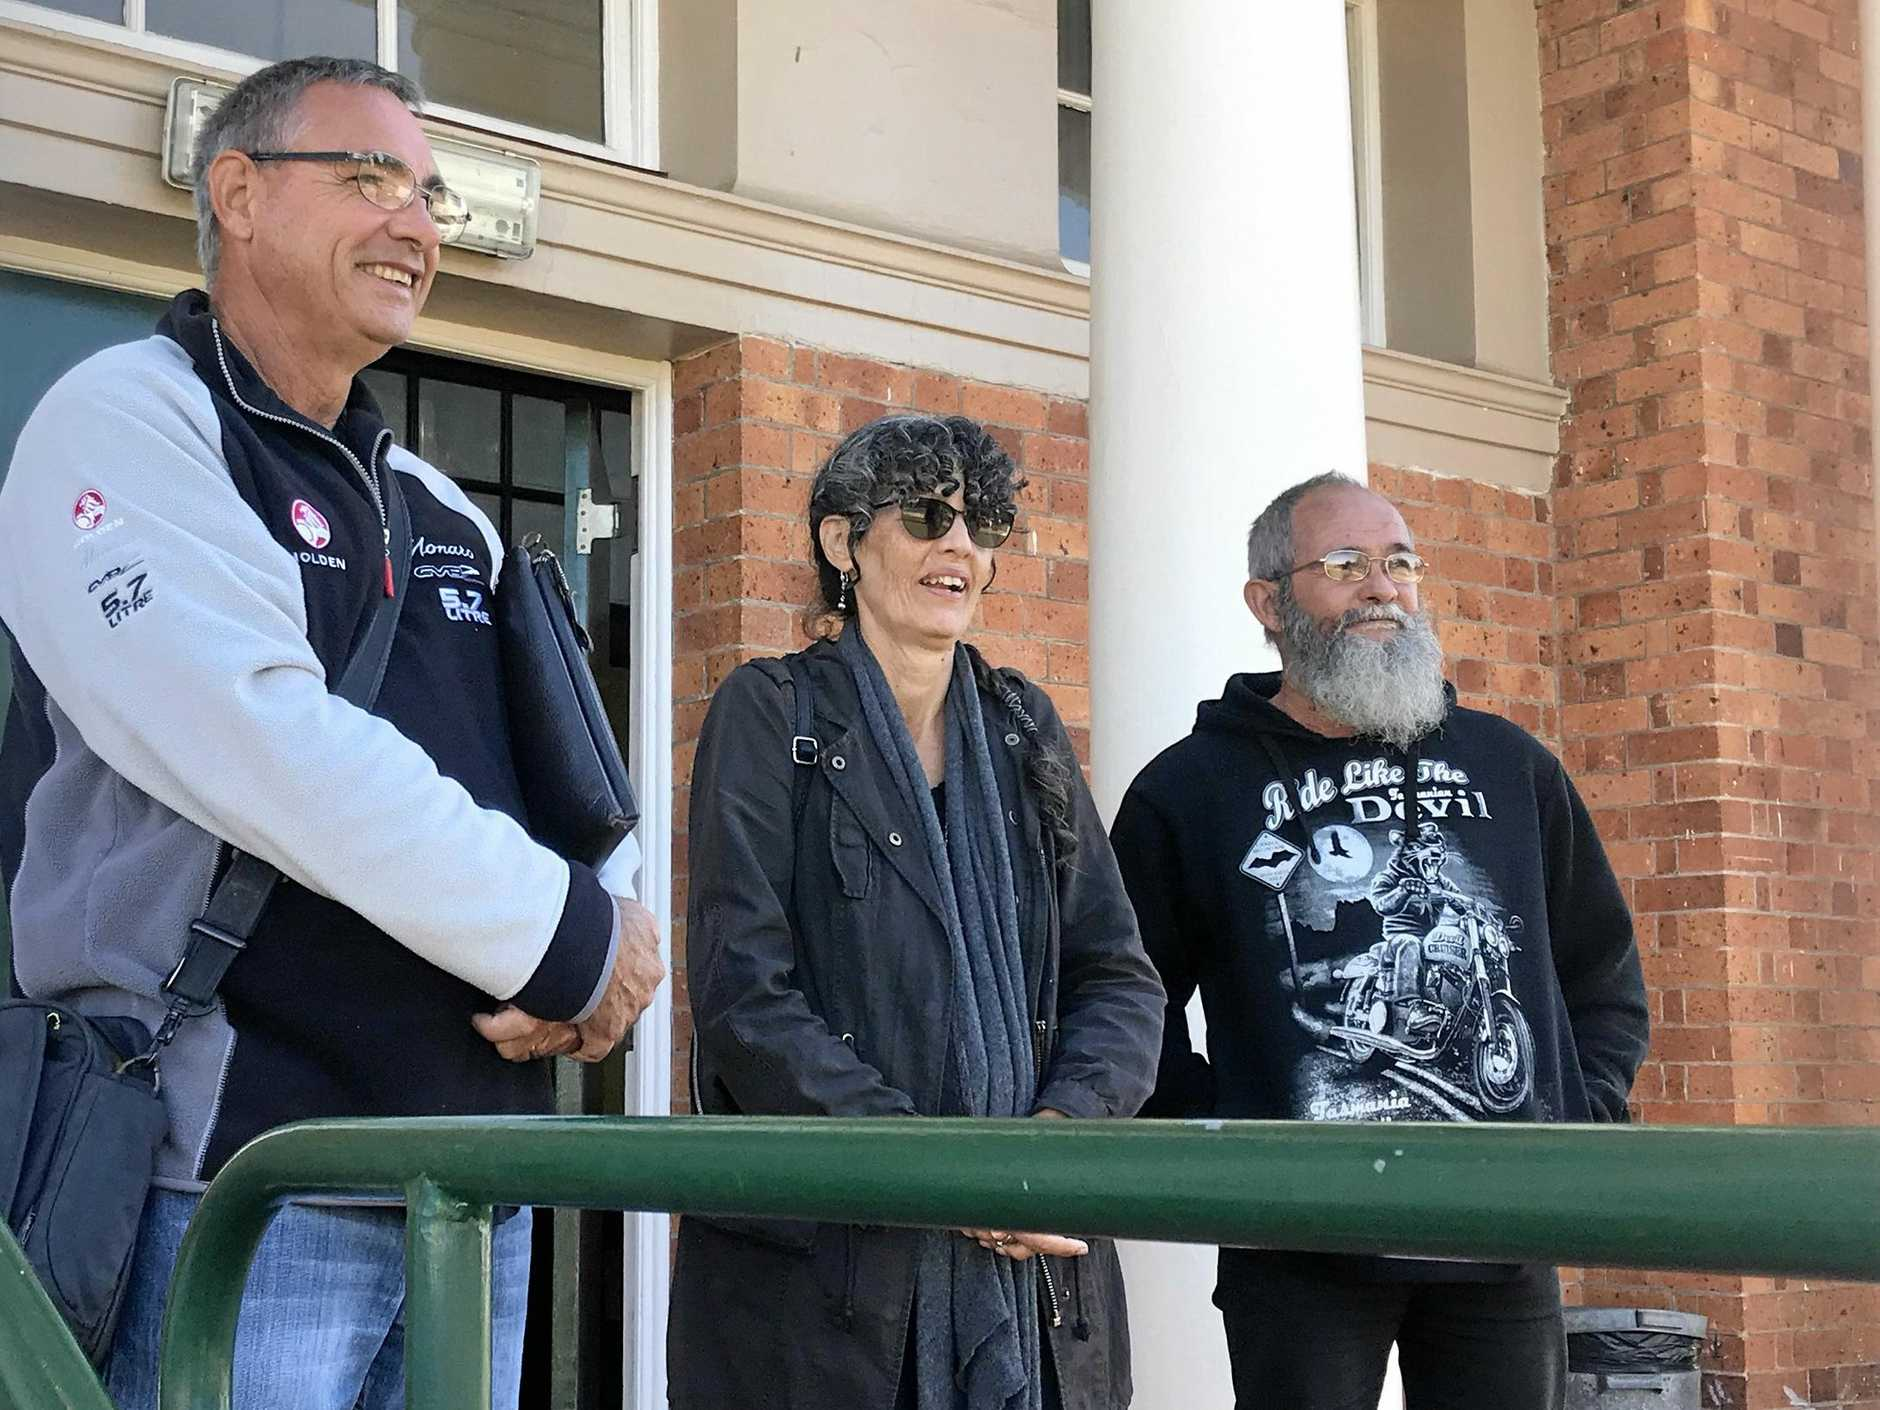 NEAR THE END: Gympie land rights protesters (from left) Wit-boooka, Diane Redden-King and Mervyn Tomlinson outside Gympie District Court yesterday